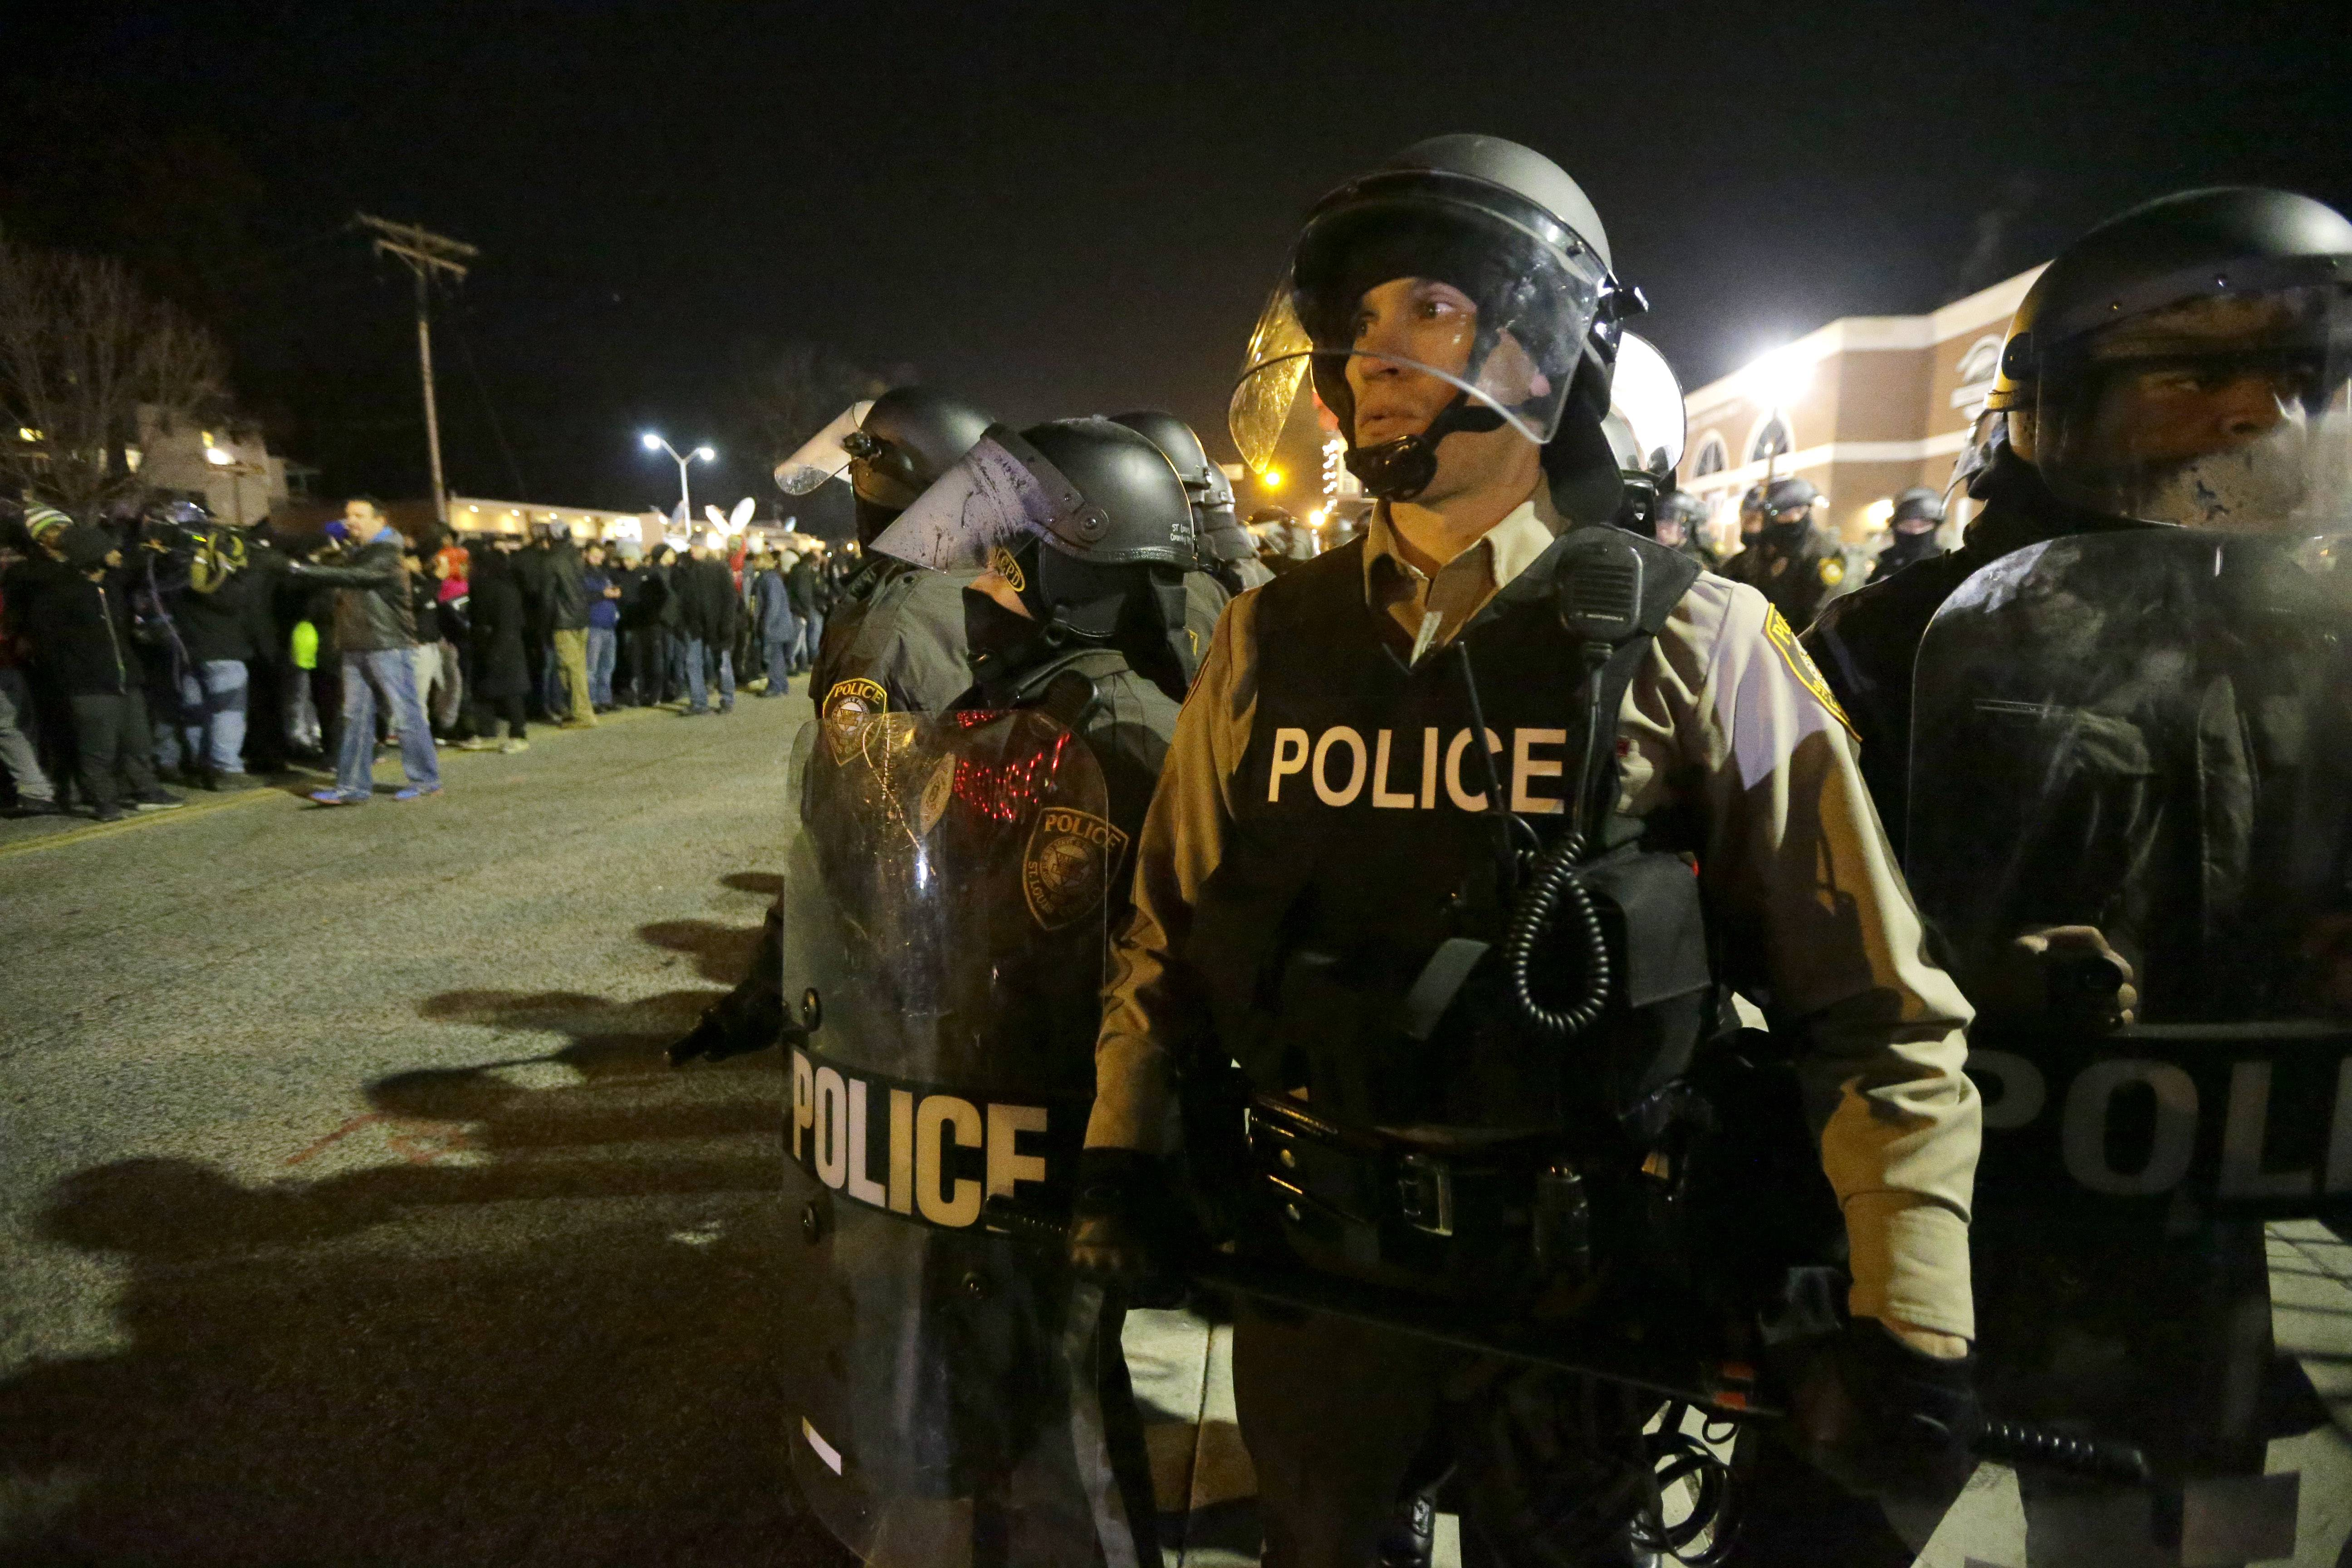 Police watch the street as protesters gather Tuesday in Ferguson, Mo.